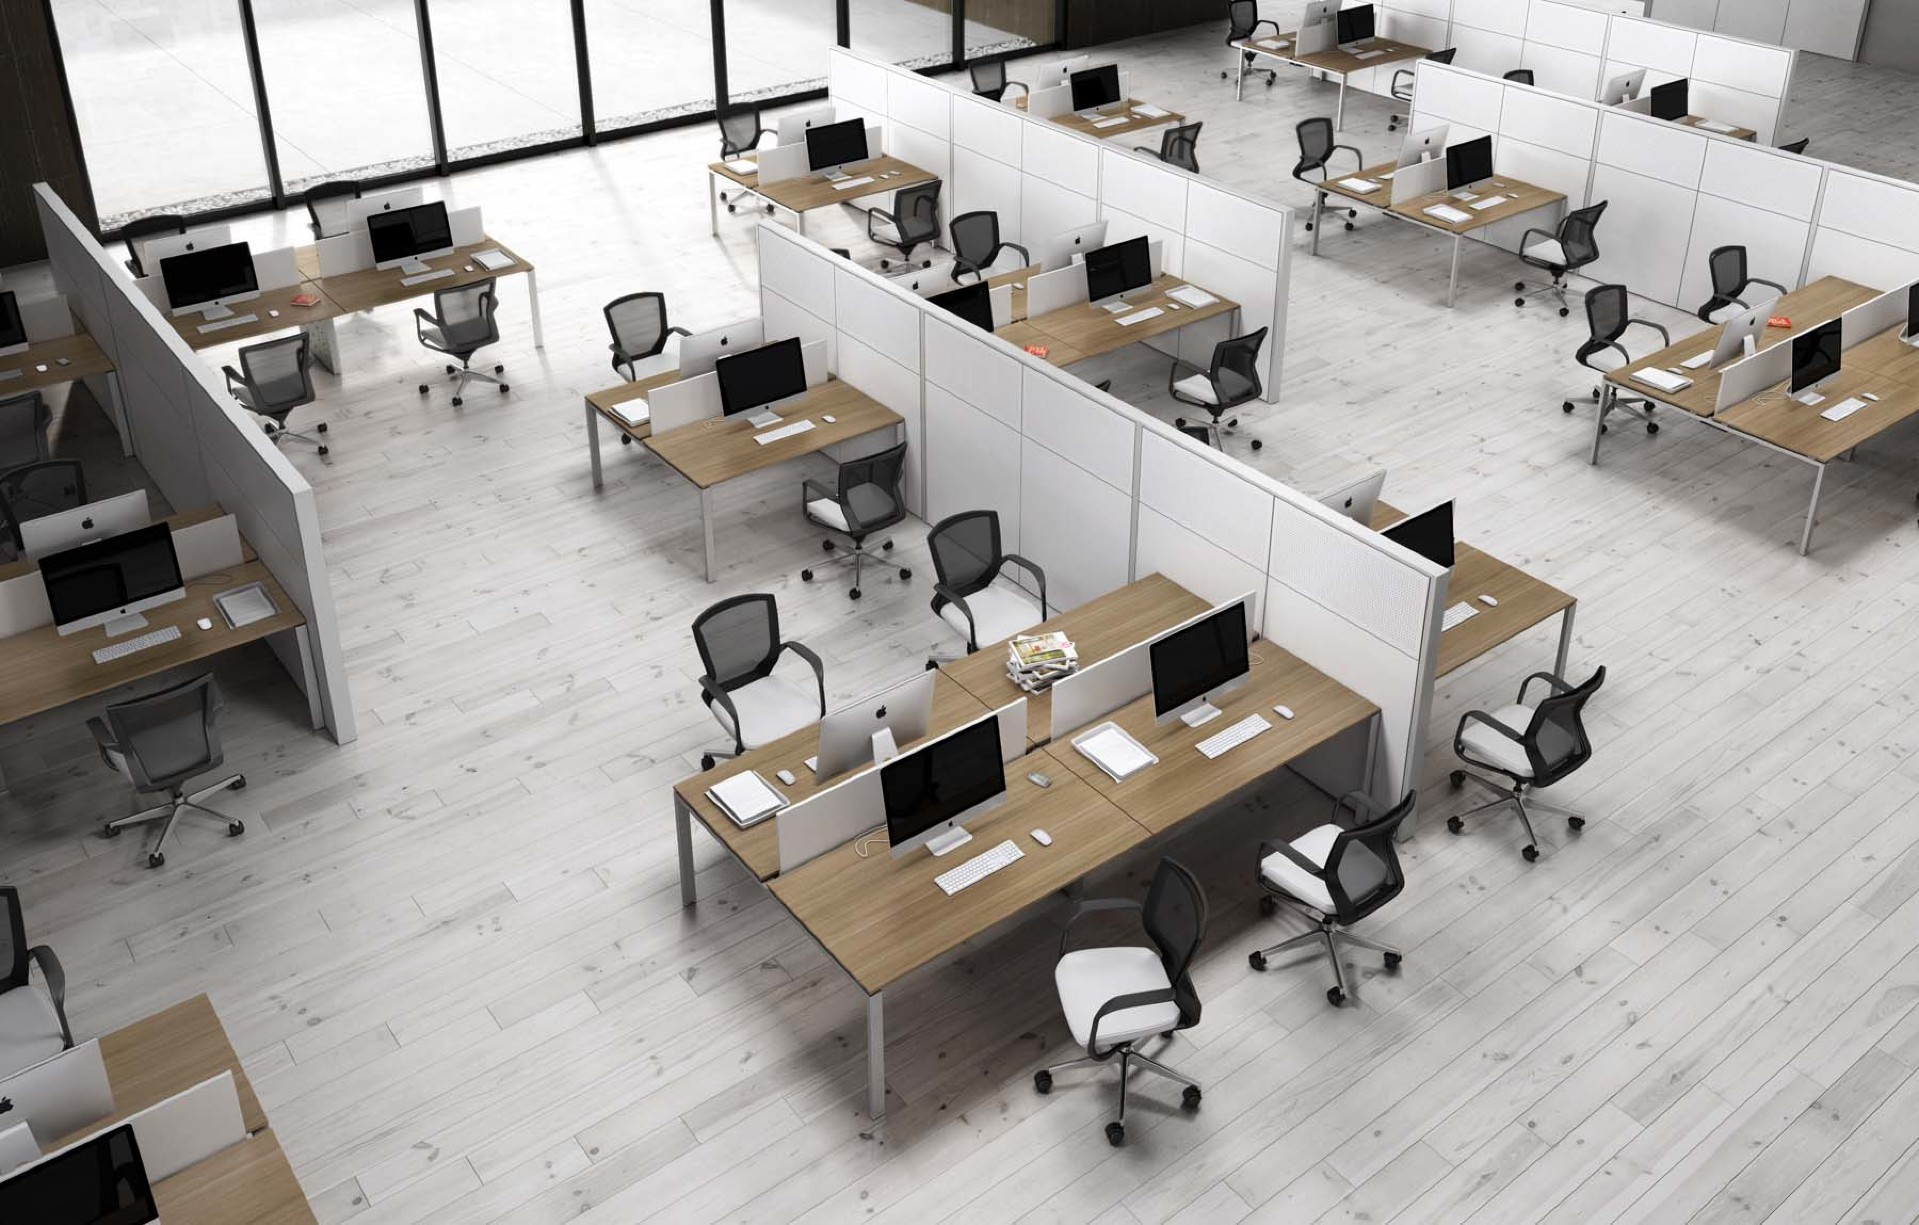 tecna-open-panel-bench-system-open-space-partition-03.jpg